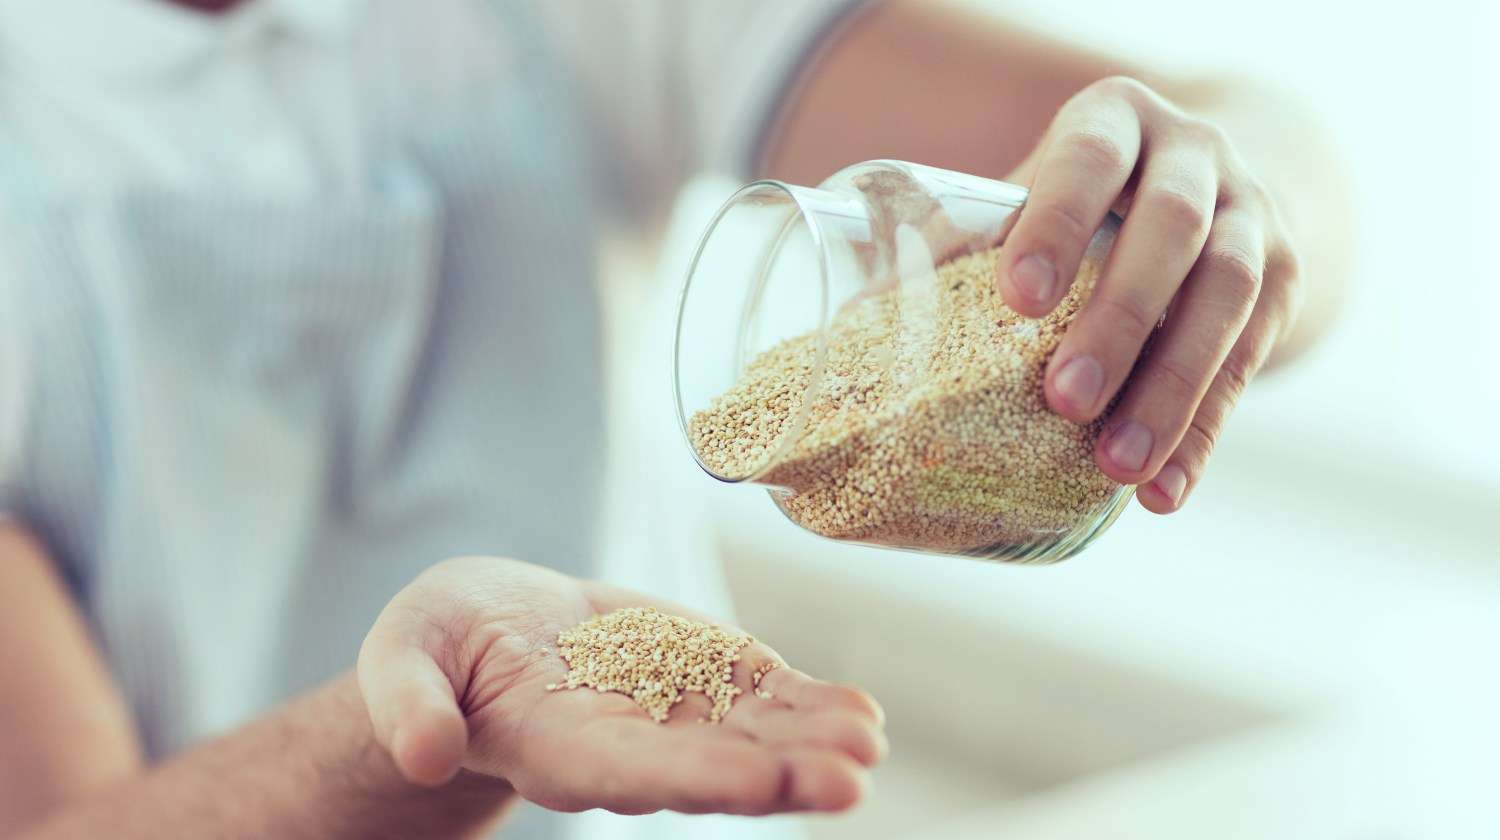 Featured | person emptying jar of quinoa | Quinoa: 6 Benefits And How To Cook Quinoa In Minutes | how to make quinoa | how to cook quinoa